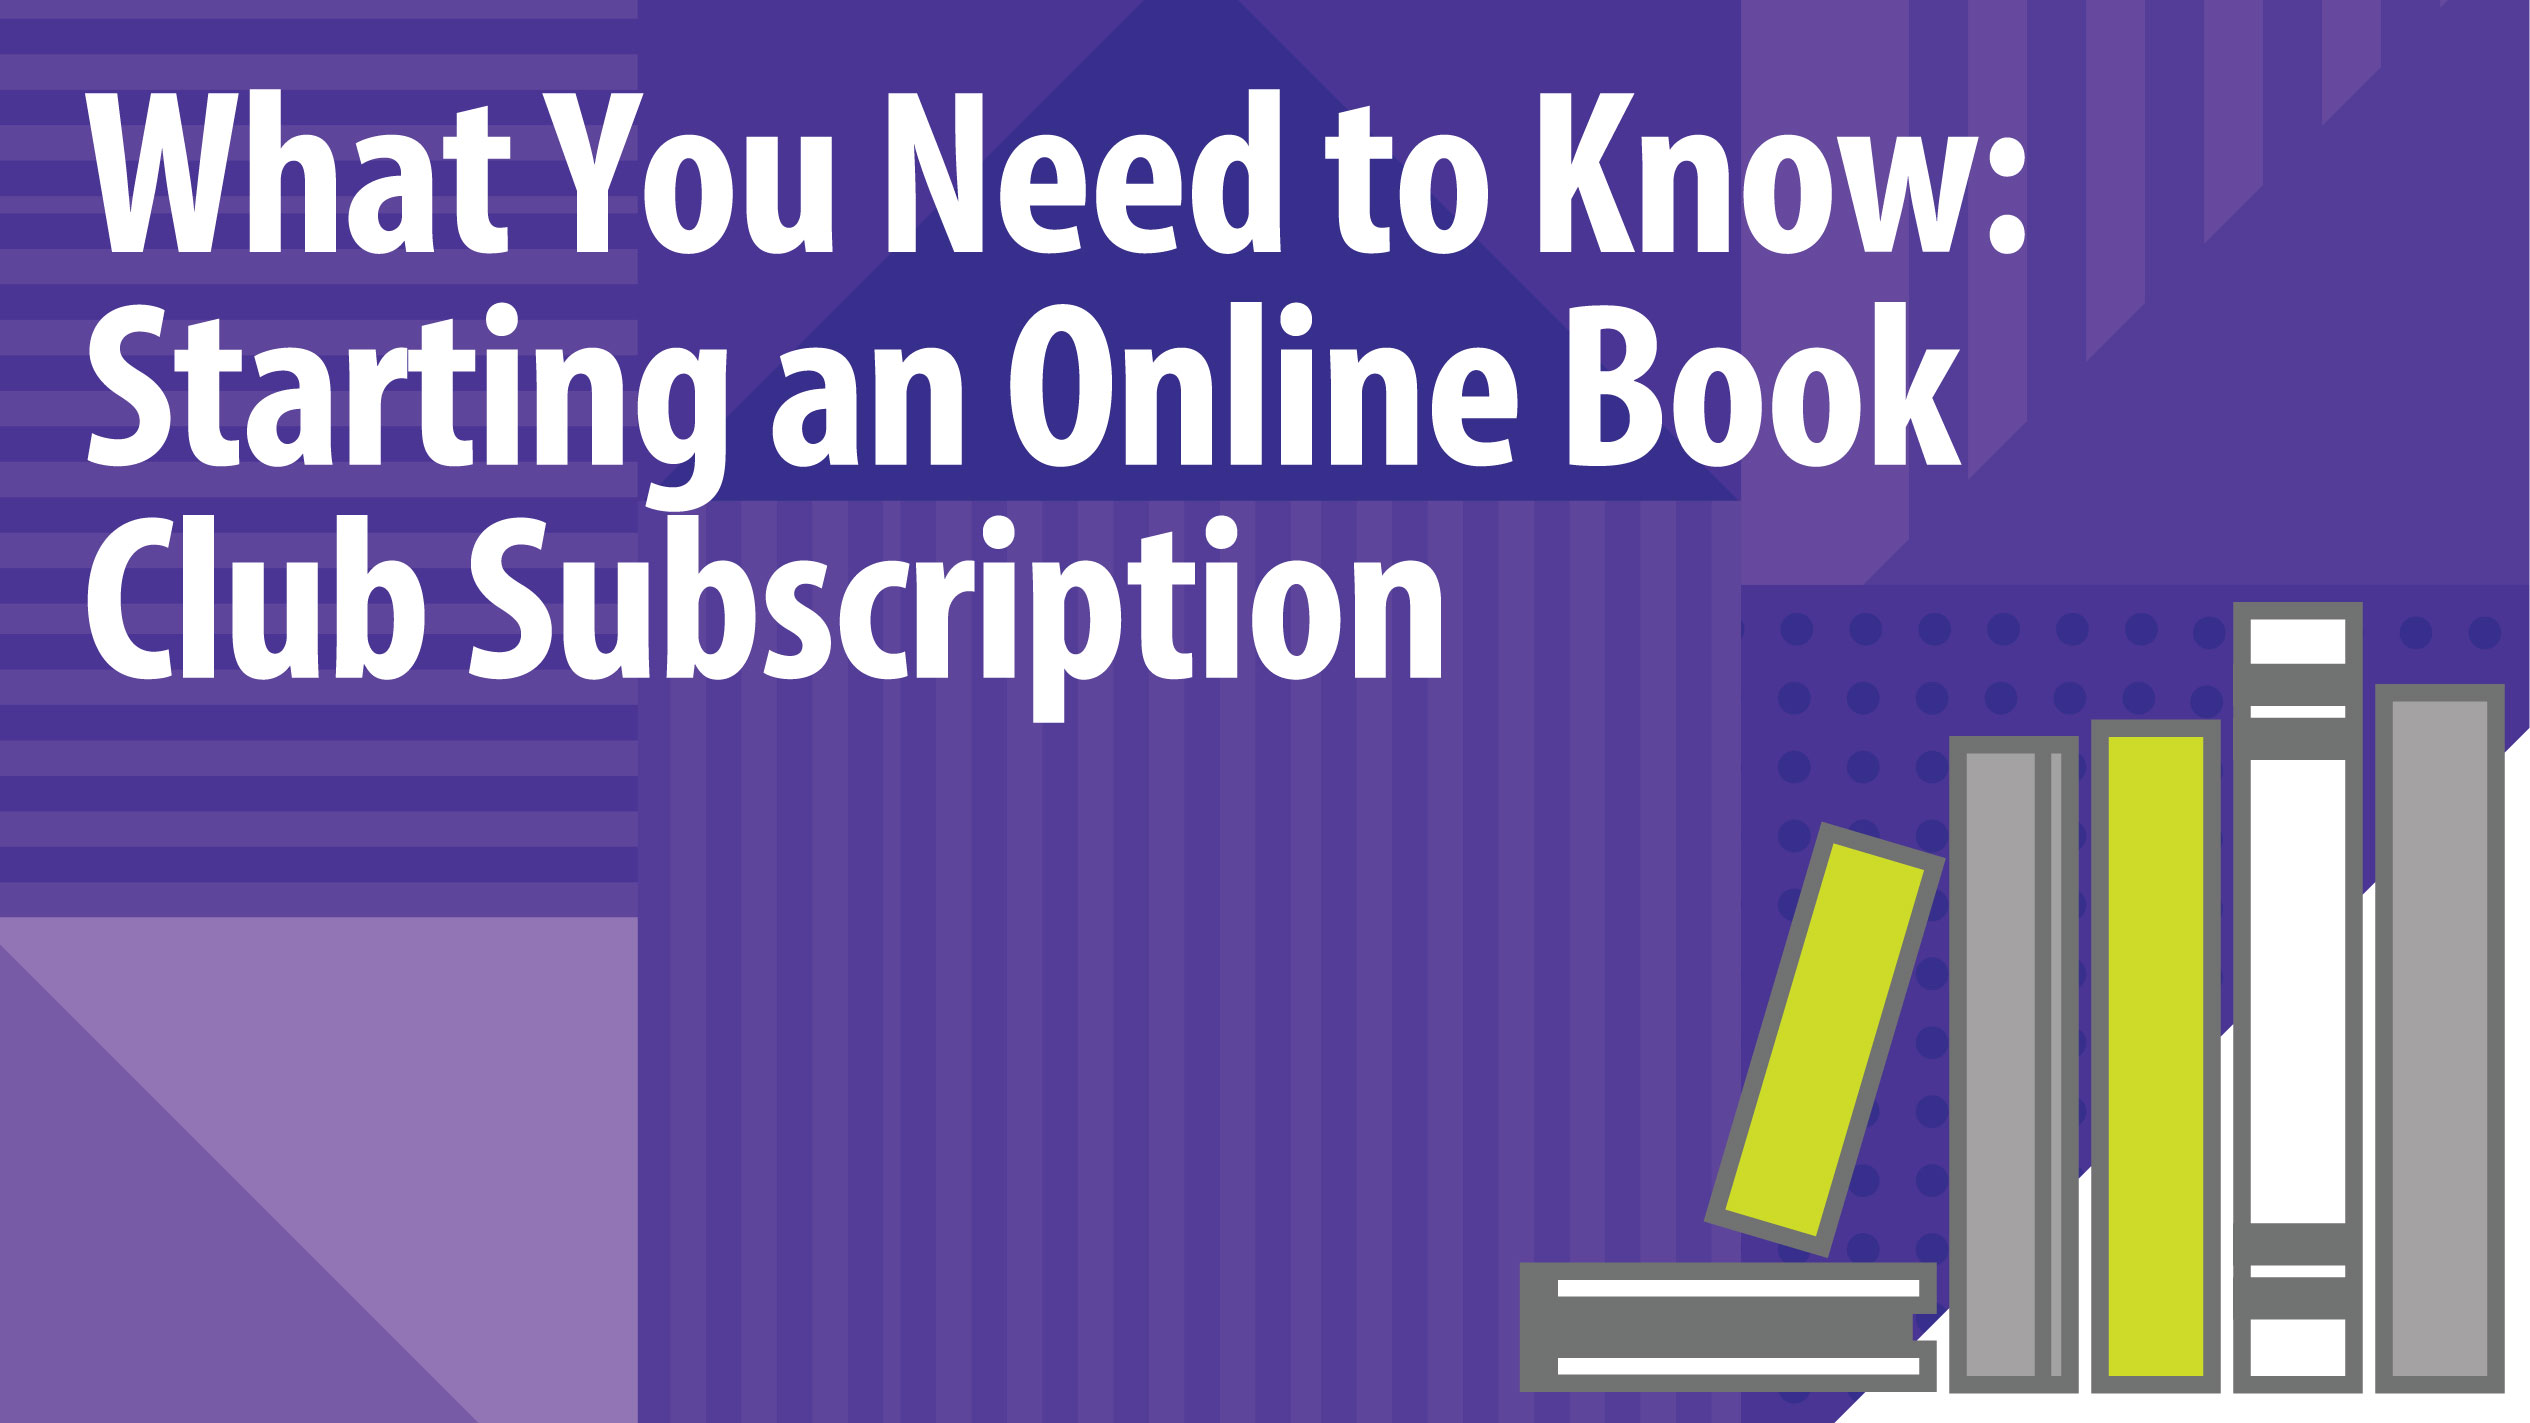 What You Need to Know: Starting an Online Book Club Subscription